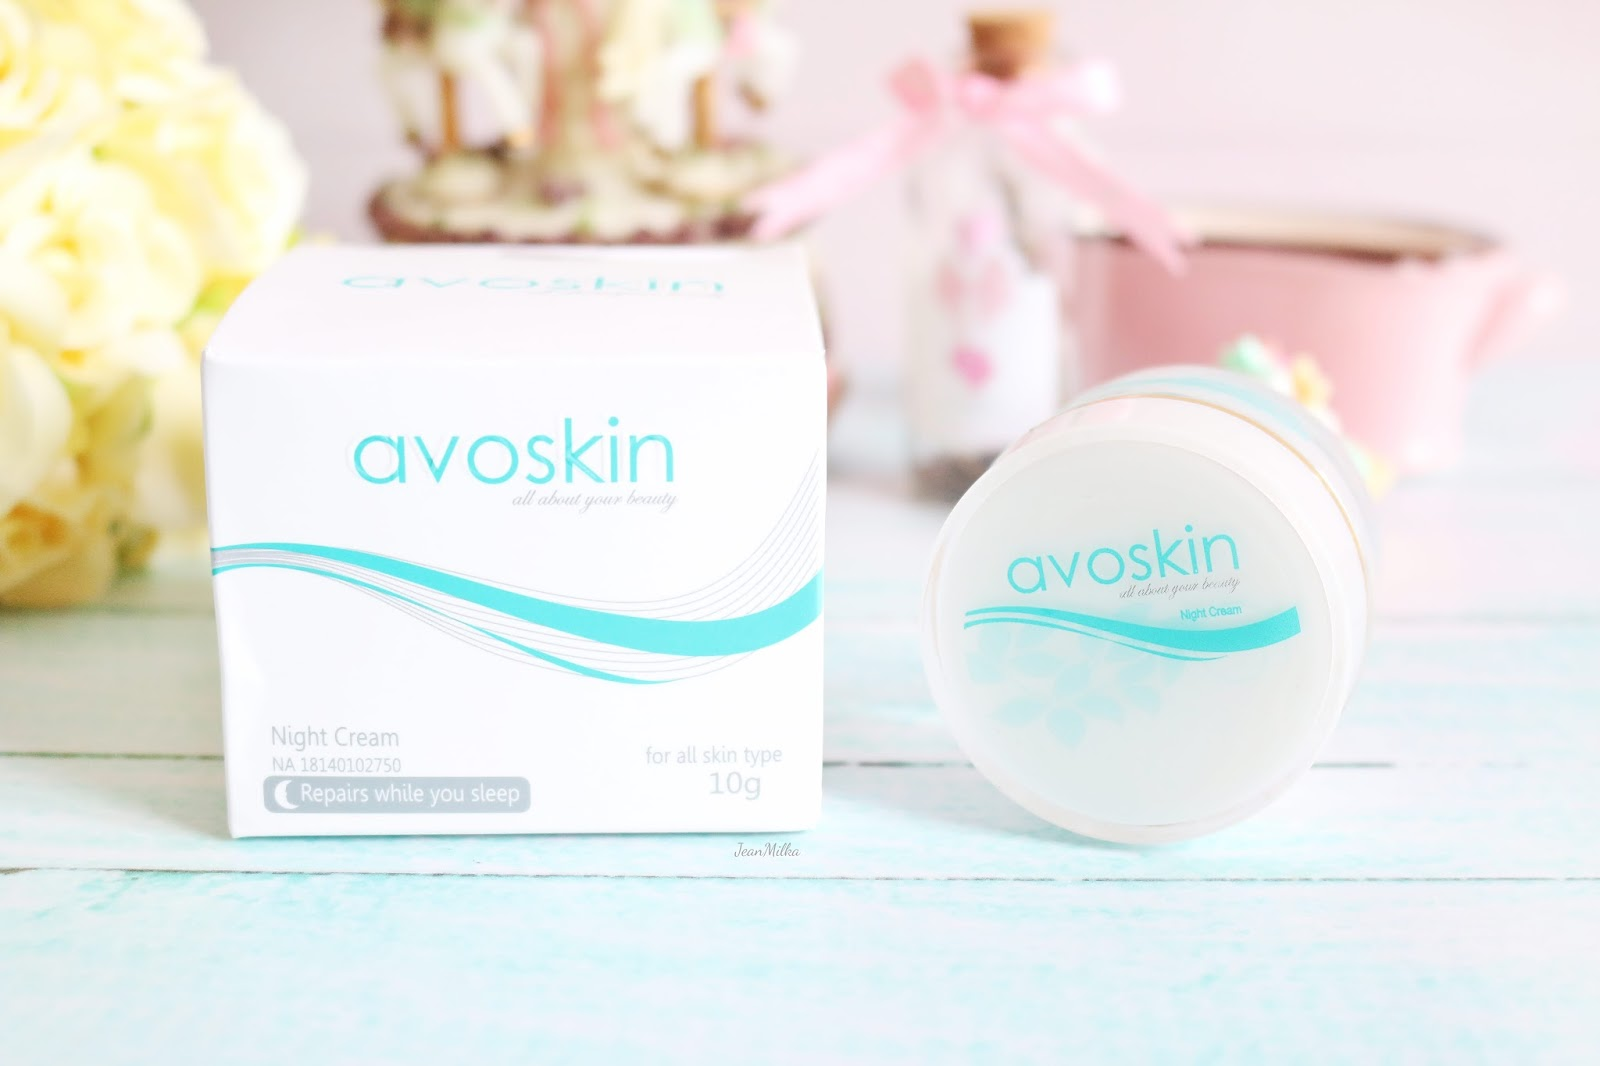 review, product review, night cream, produk indonesia, skincare, avoskin, avoskin night cream, drugstore, skincare murah